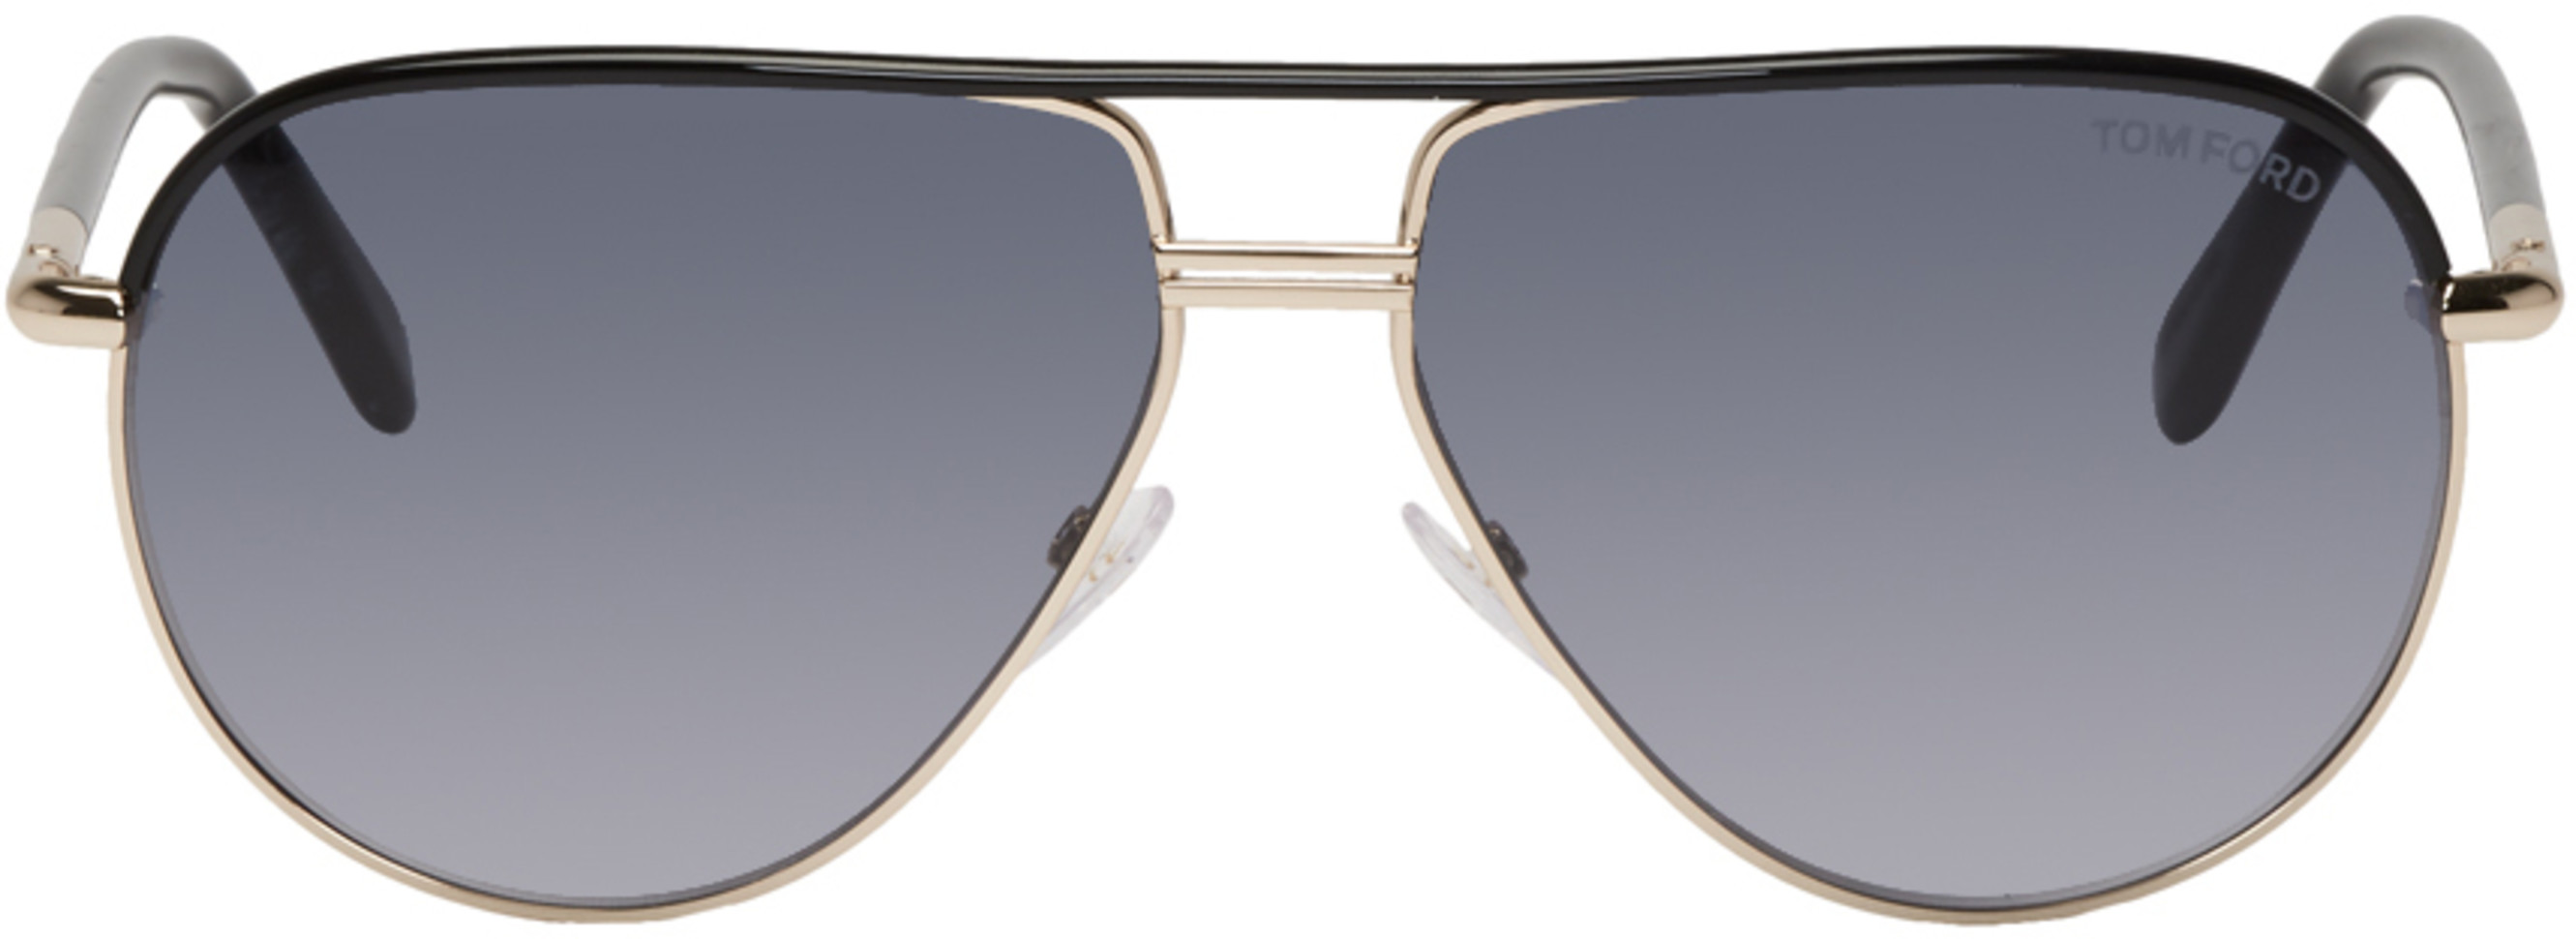 fd0e65e3f9a Tom Ford for Men SS19 Collection